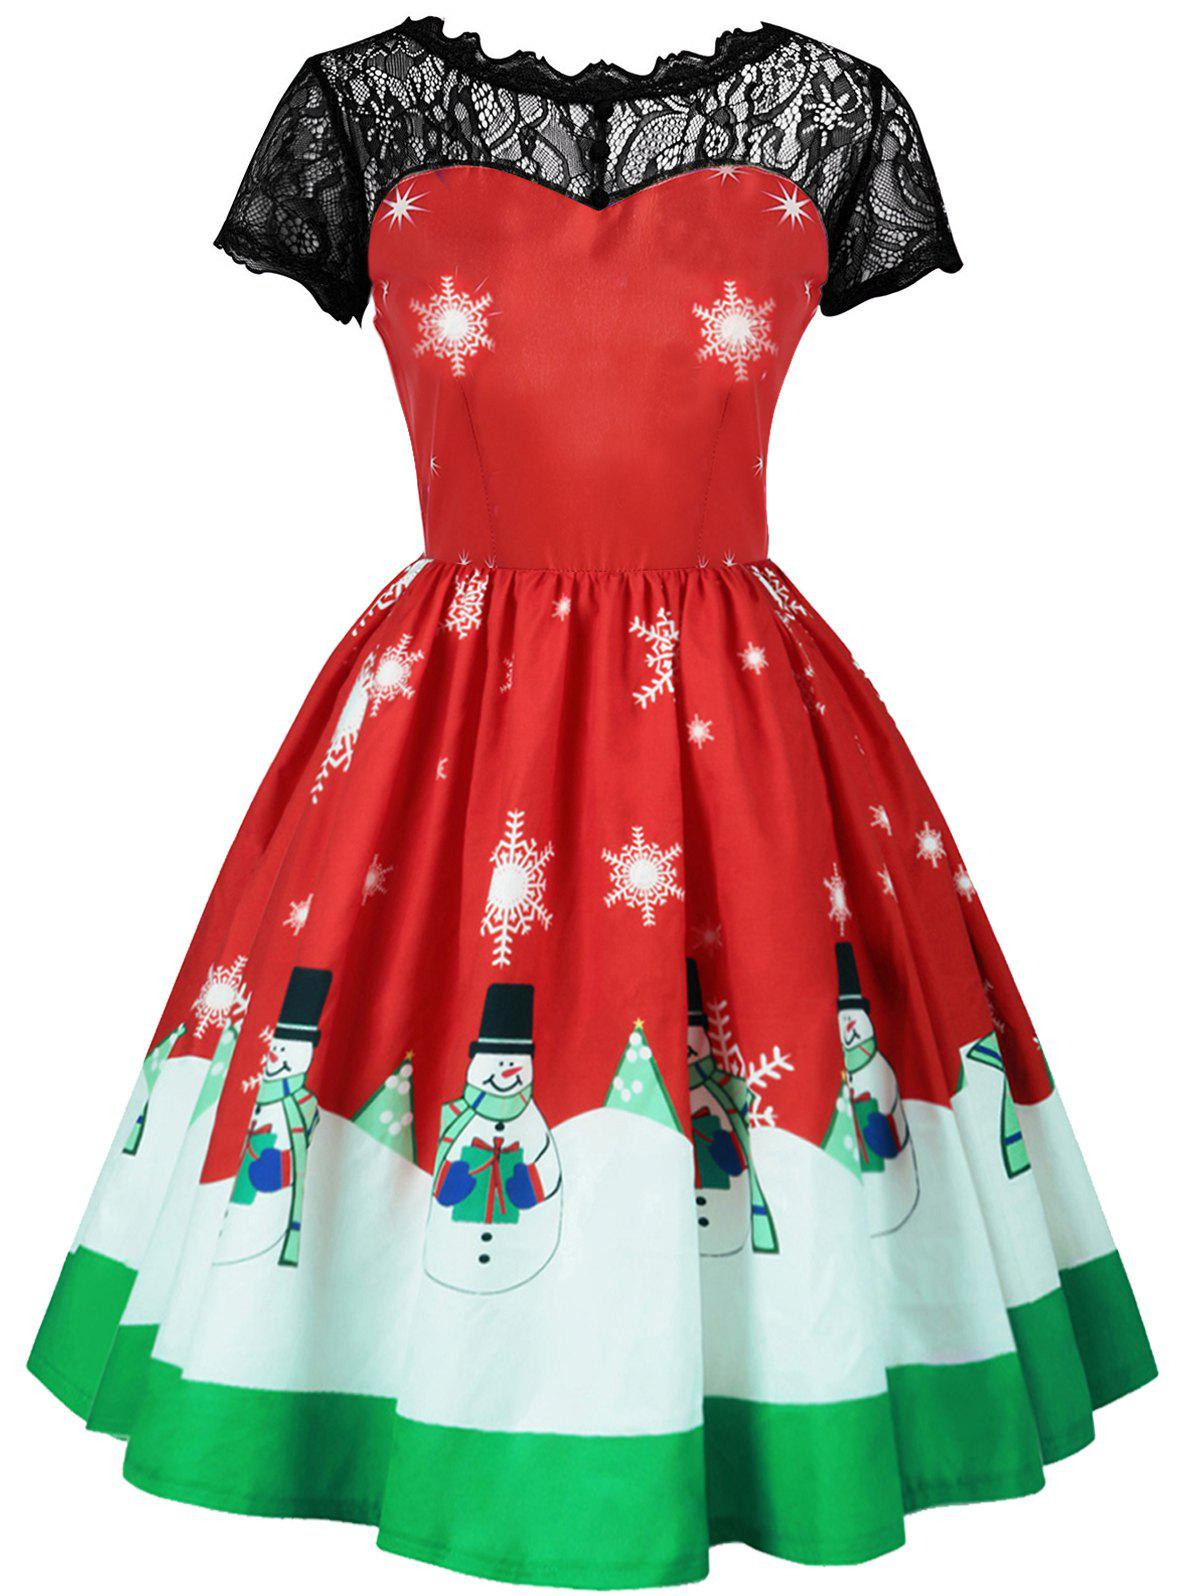 Plus Size Christmas Snowman and Snowflake Print DressWOMEN<br><br>Size: XL; Color: RED; Style: Vintage; Material: Polyester; Silhouette: A-Line; Dresses Length: Mid-Calf; Neckline: Round Collar; Sleeve Length: Short Sleeves; Embellishment: Lace; Pattern Type: Print; With Belt: No; Season: Fall,Spring; Weight: 0.2700kg; Package Contents: 1 x Dress;